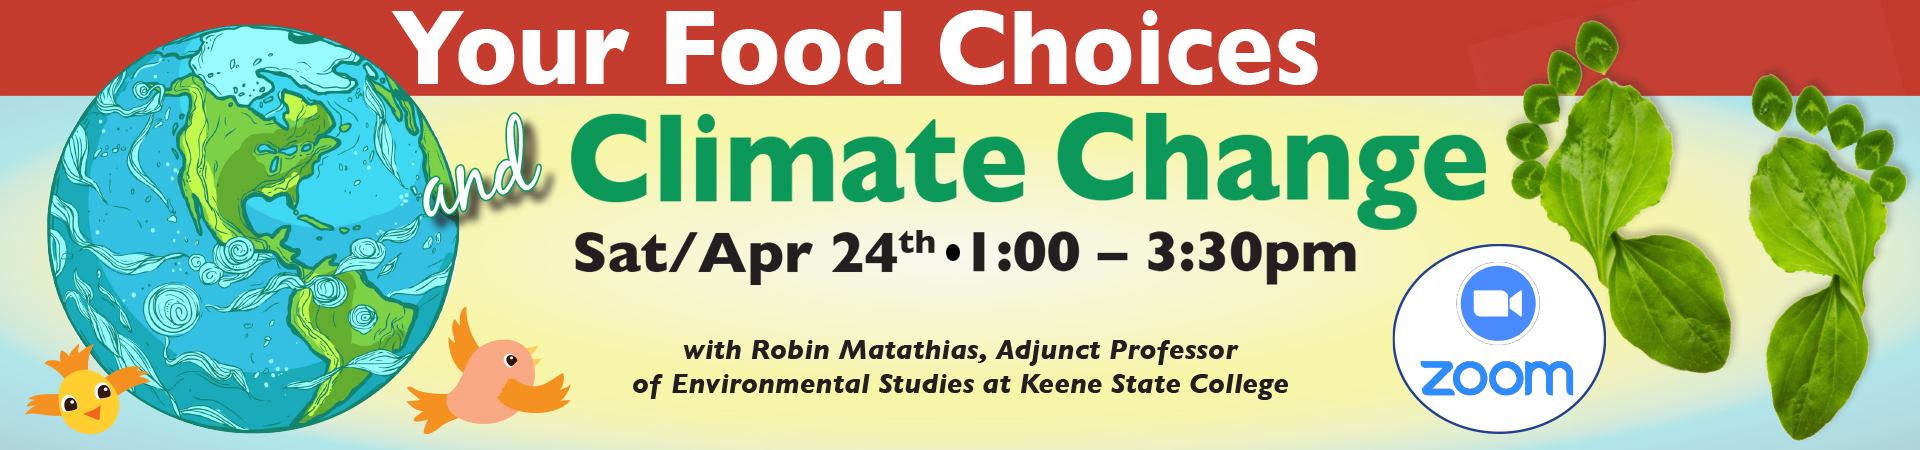 Food Choices and Climate Change